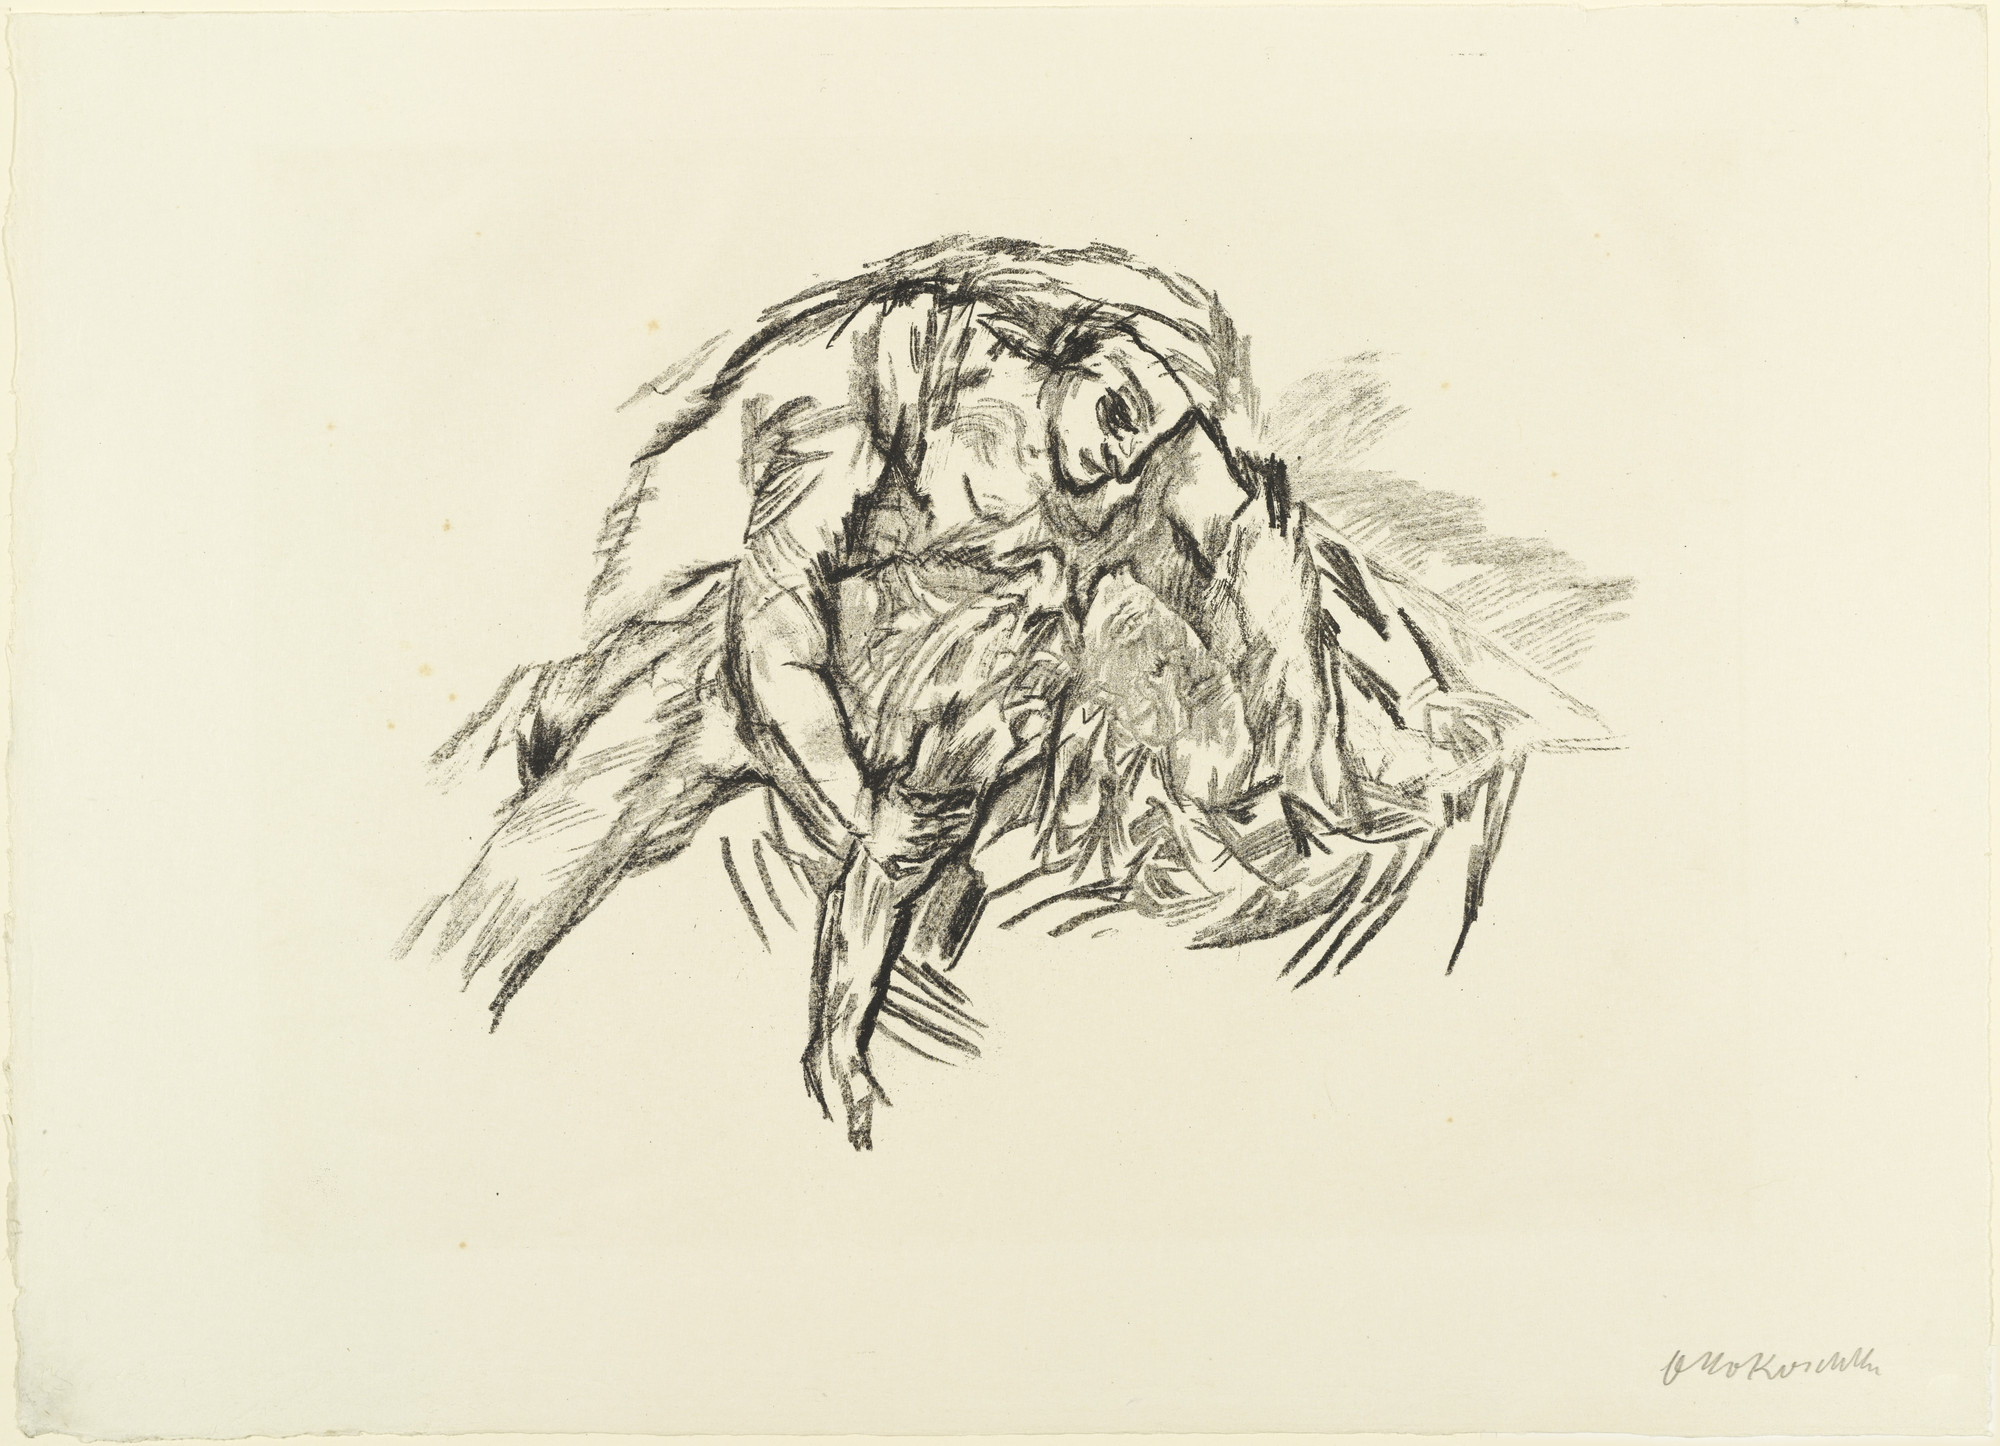 Oskar Kokoschka. Woman Bent over Phantom (Weib über Schemen gebeugt) (plate 10) from The Bound Columbus (Der gefesselte Columbus). 1916 (executed 1913)